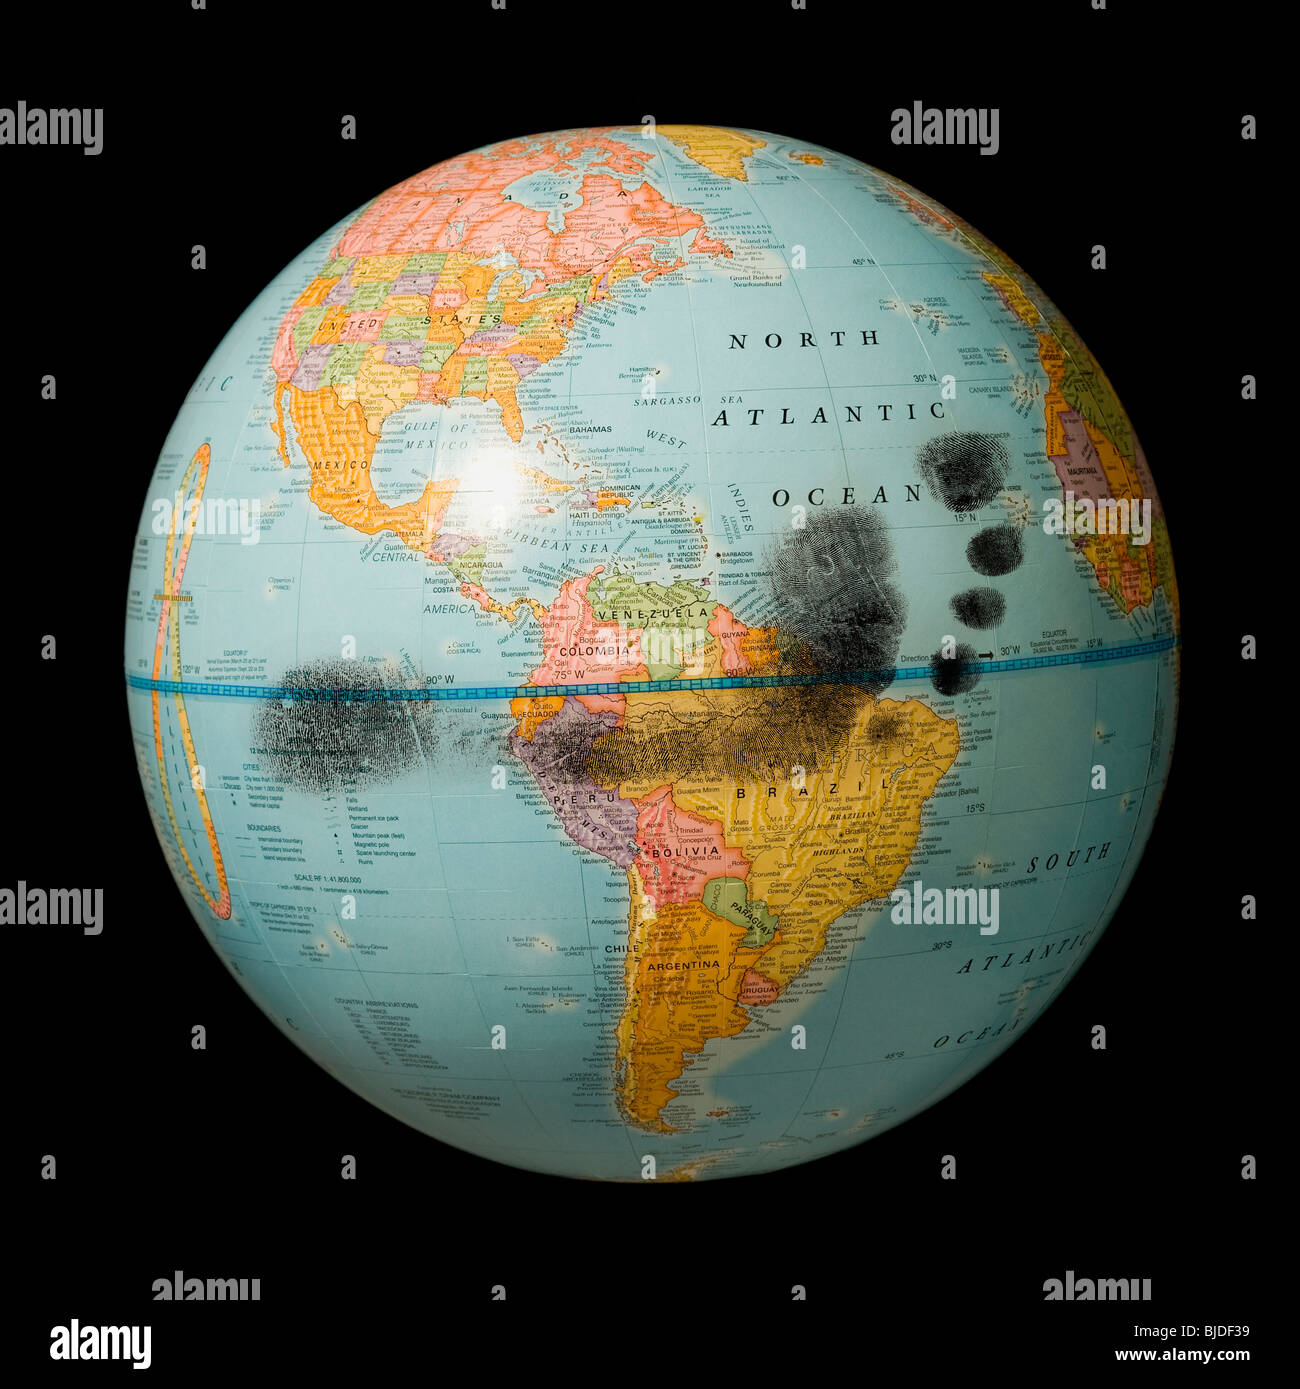 Footprint on a globe. - Stock Image